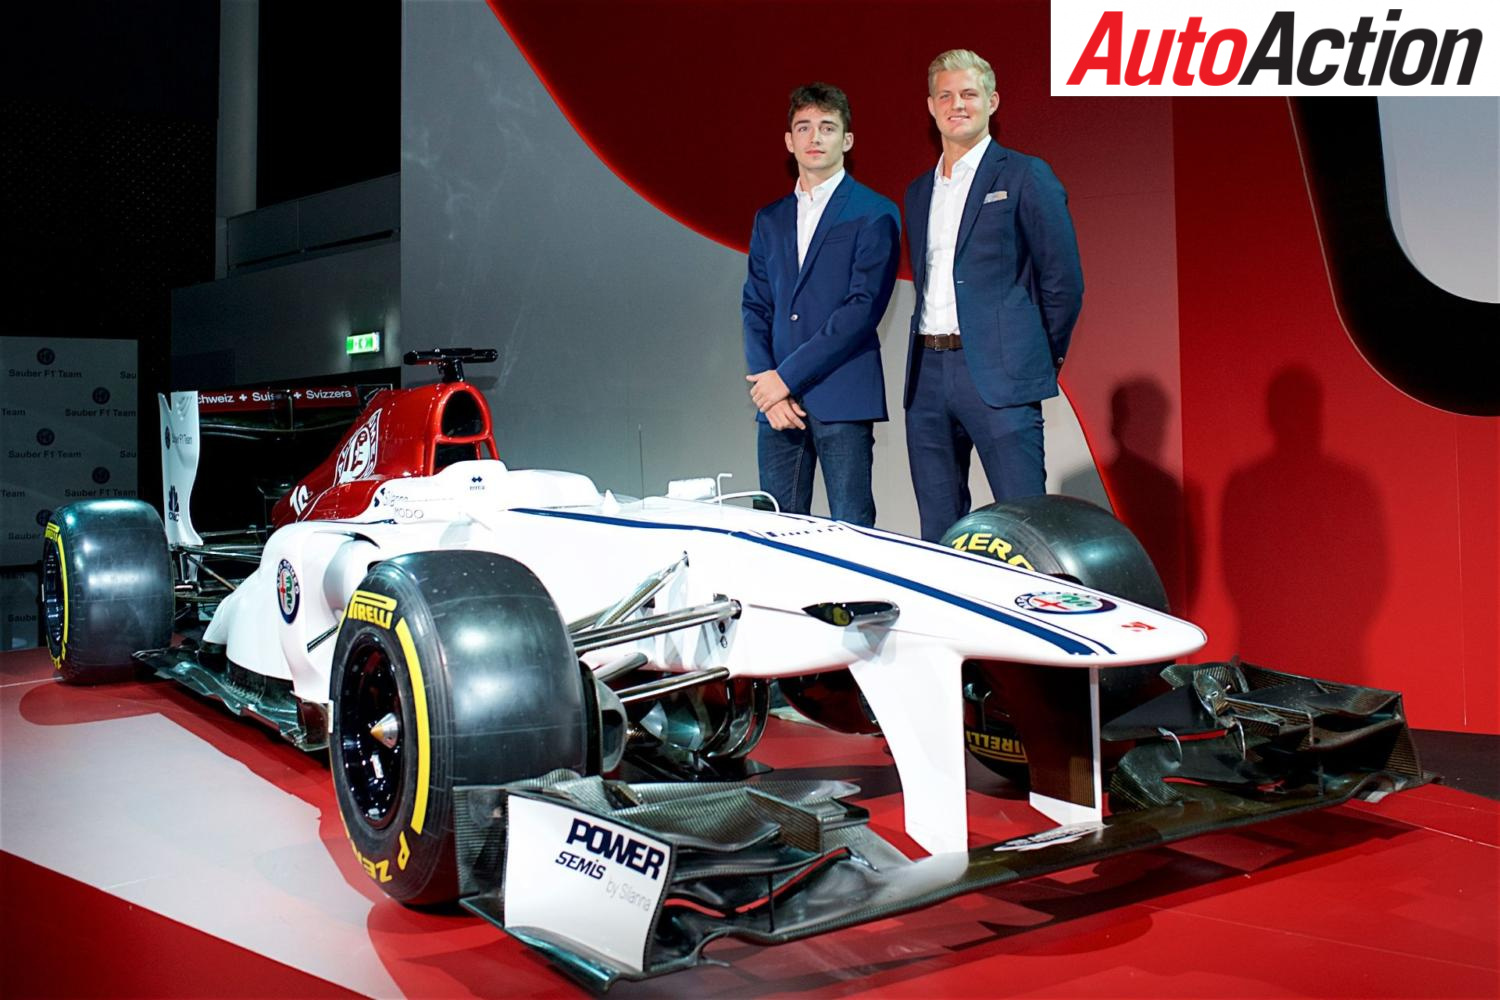 A new era for Alfa Romeo in F1 with its new deal with Sauber Auto